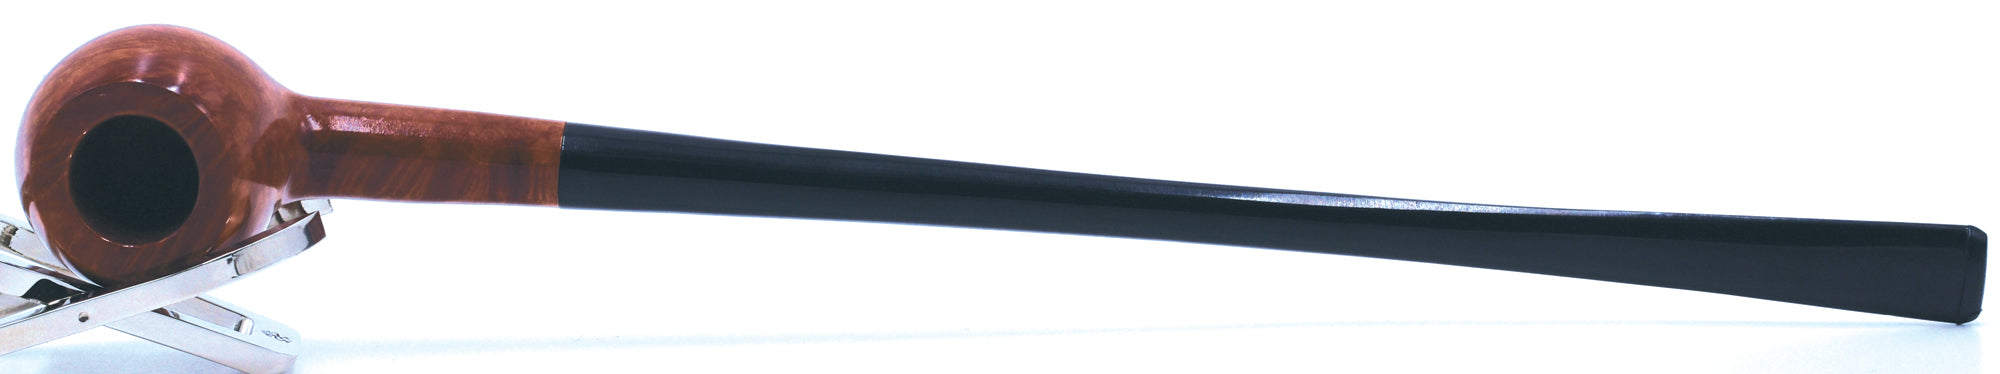 LEGENDEX® CAPRI* Non-Filtered Briar Smoking Pipe Long Churchwarden Made In Italy 01-08-902